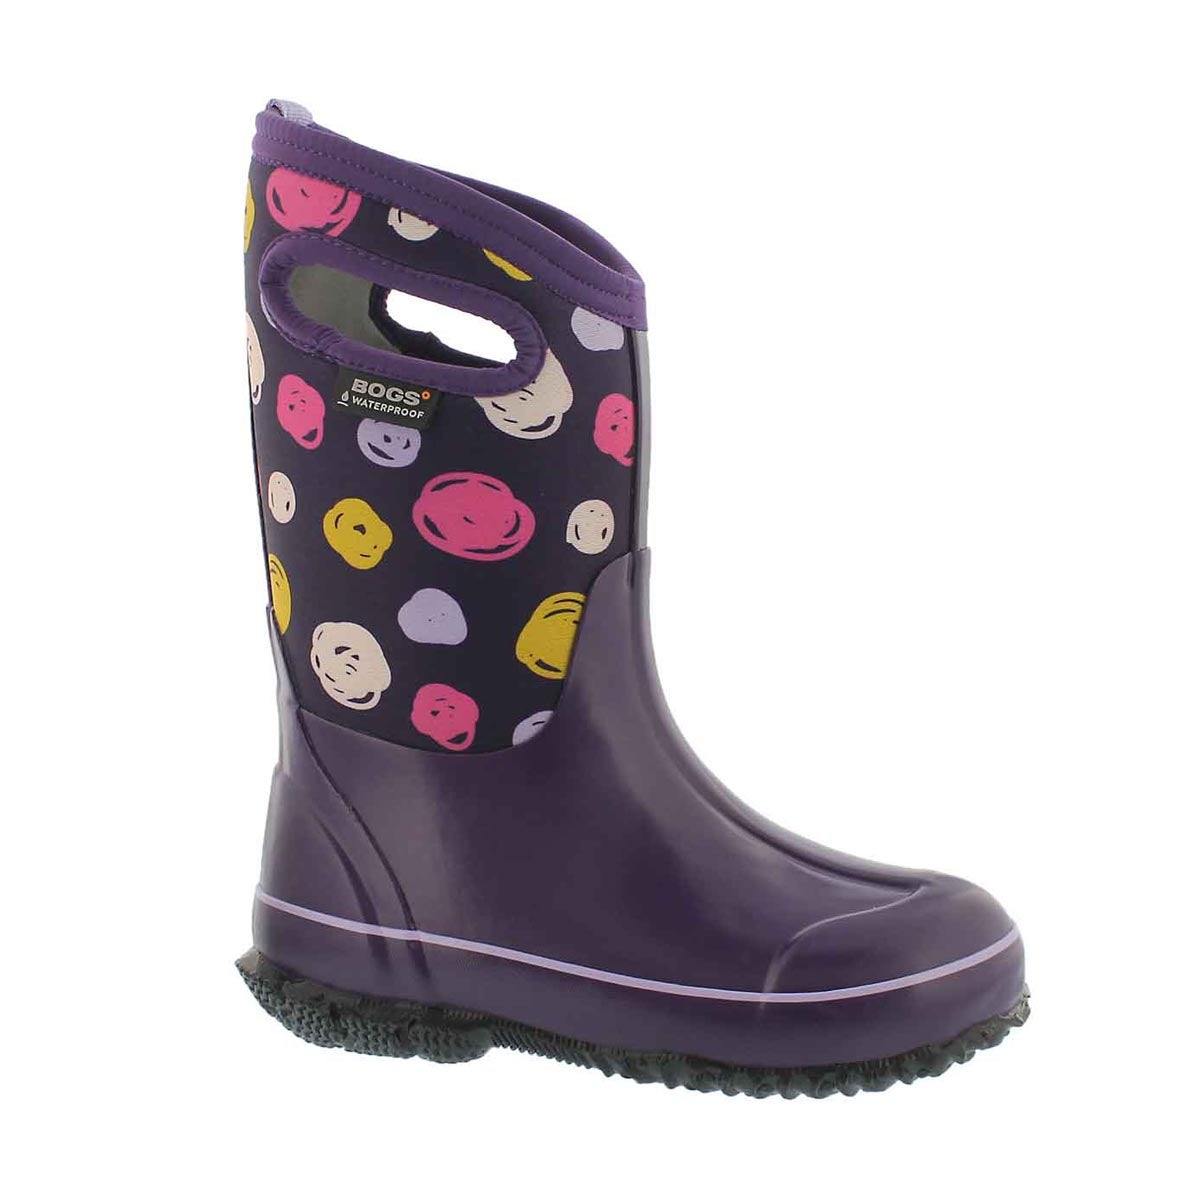 Girls' CLASSIC SKETCHED DOTS ppl waterproof boots